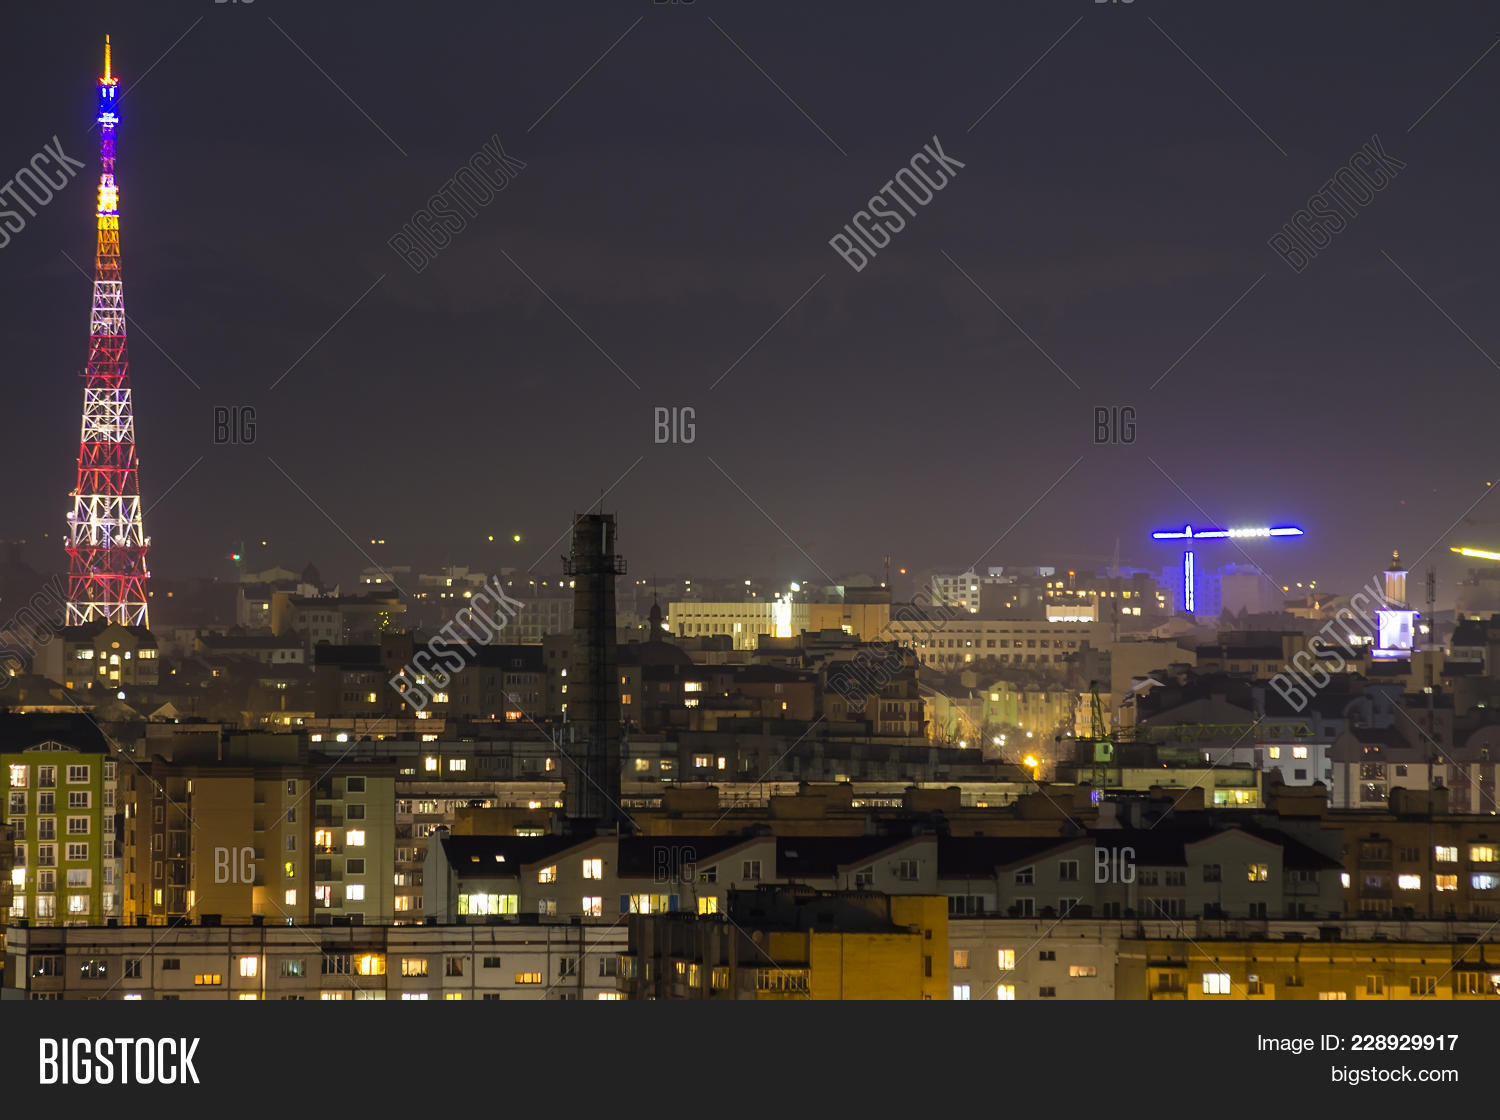 aerial,architecture,background,beautiful,blue,building,business,capital,carpathian,city,cityscape,downtown,dusk,evening,exterior,famous,financial,frankivsk,illuminated,ivano,ivano-frankivsk,landmark,landscape,light,metropolis,midtown,modern,mountains,night,office,outdoors,panorama,panoramic,roof,scene,sky,skyline,skyscraper,square,street,sunset,tower,travel,twilight,ukraine,urban,view